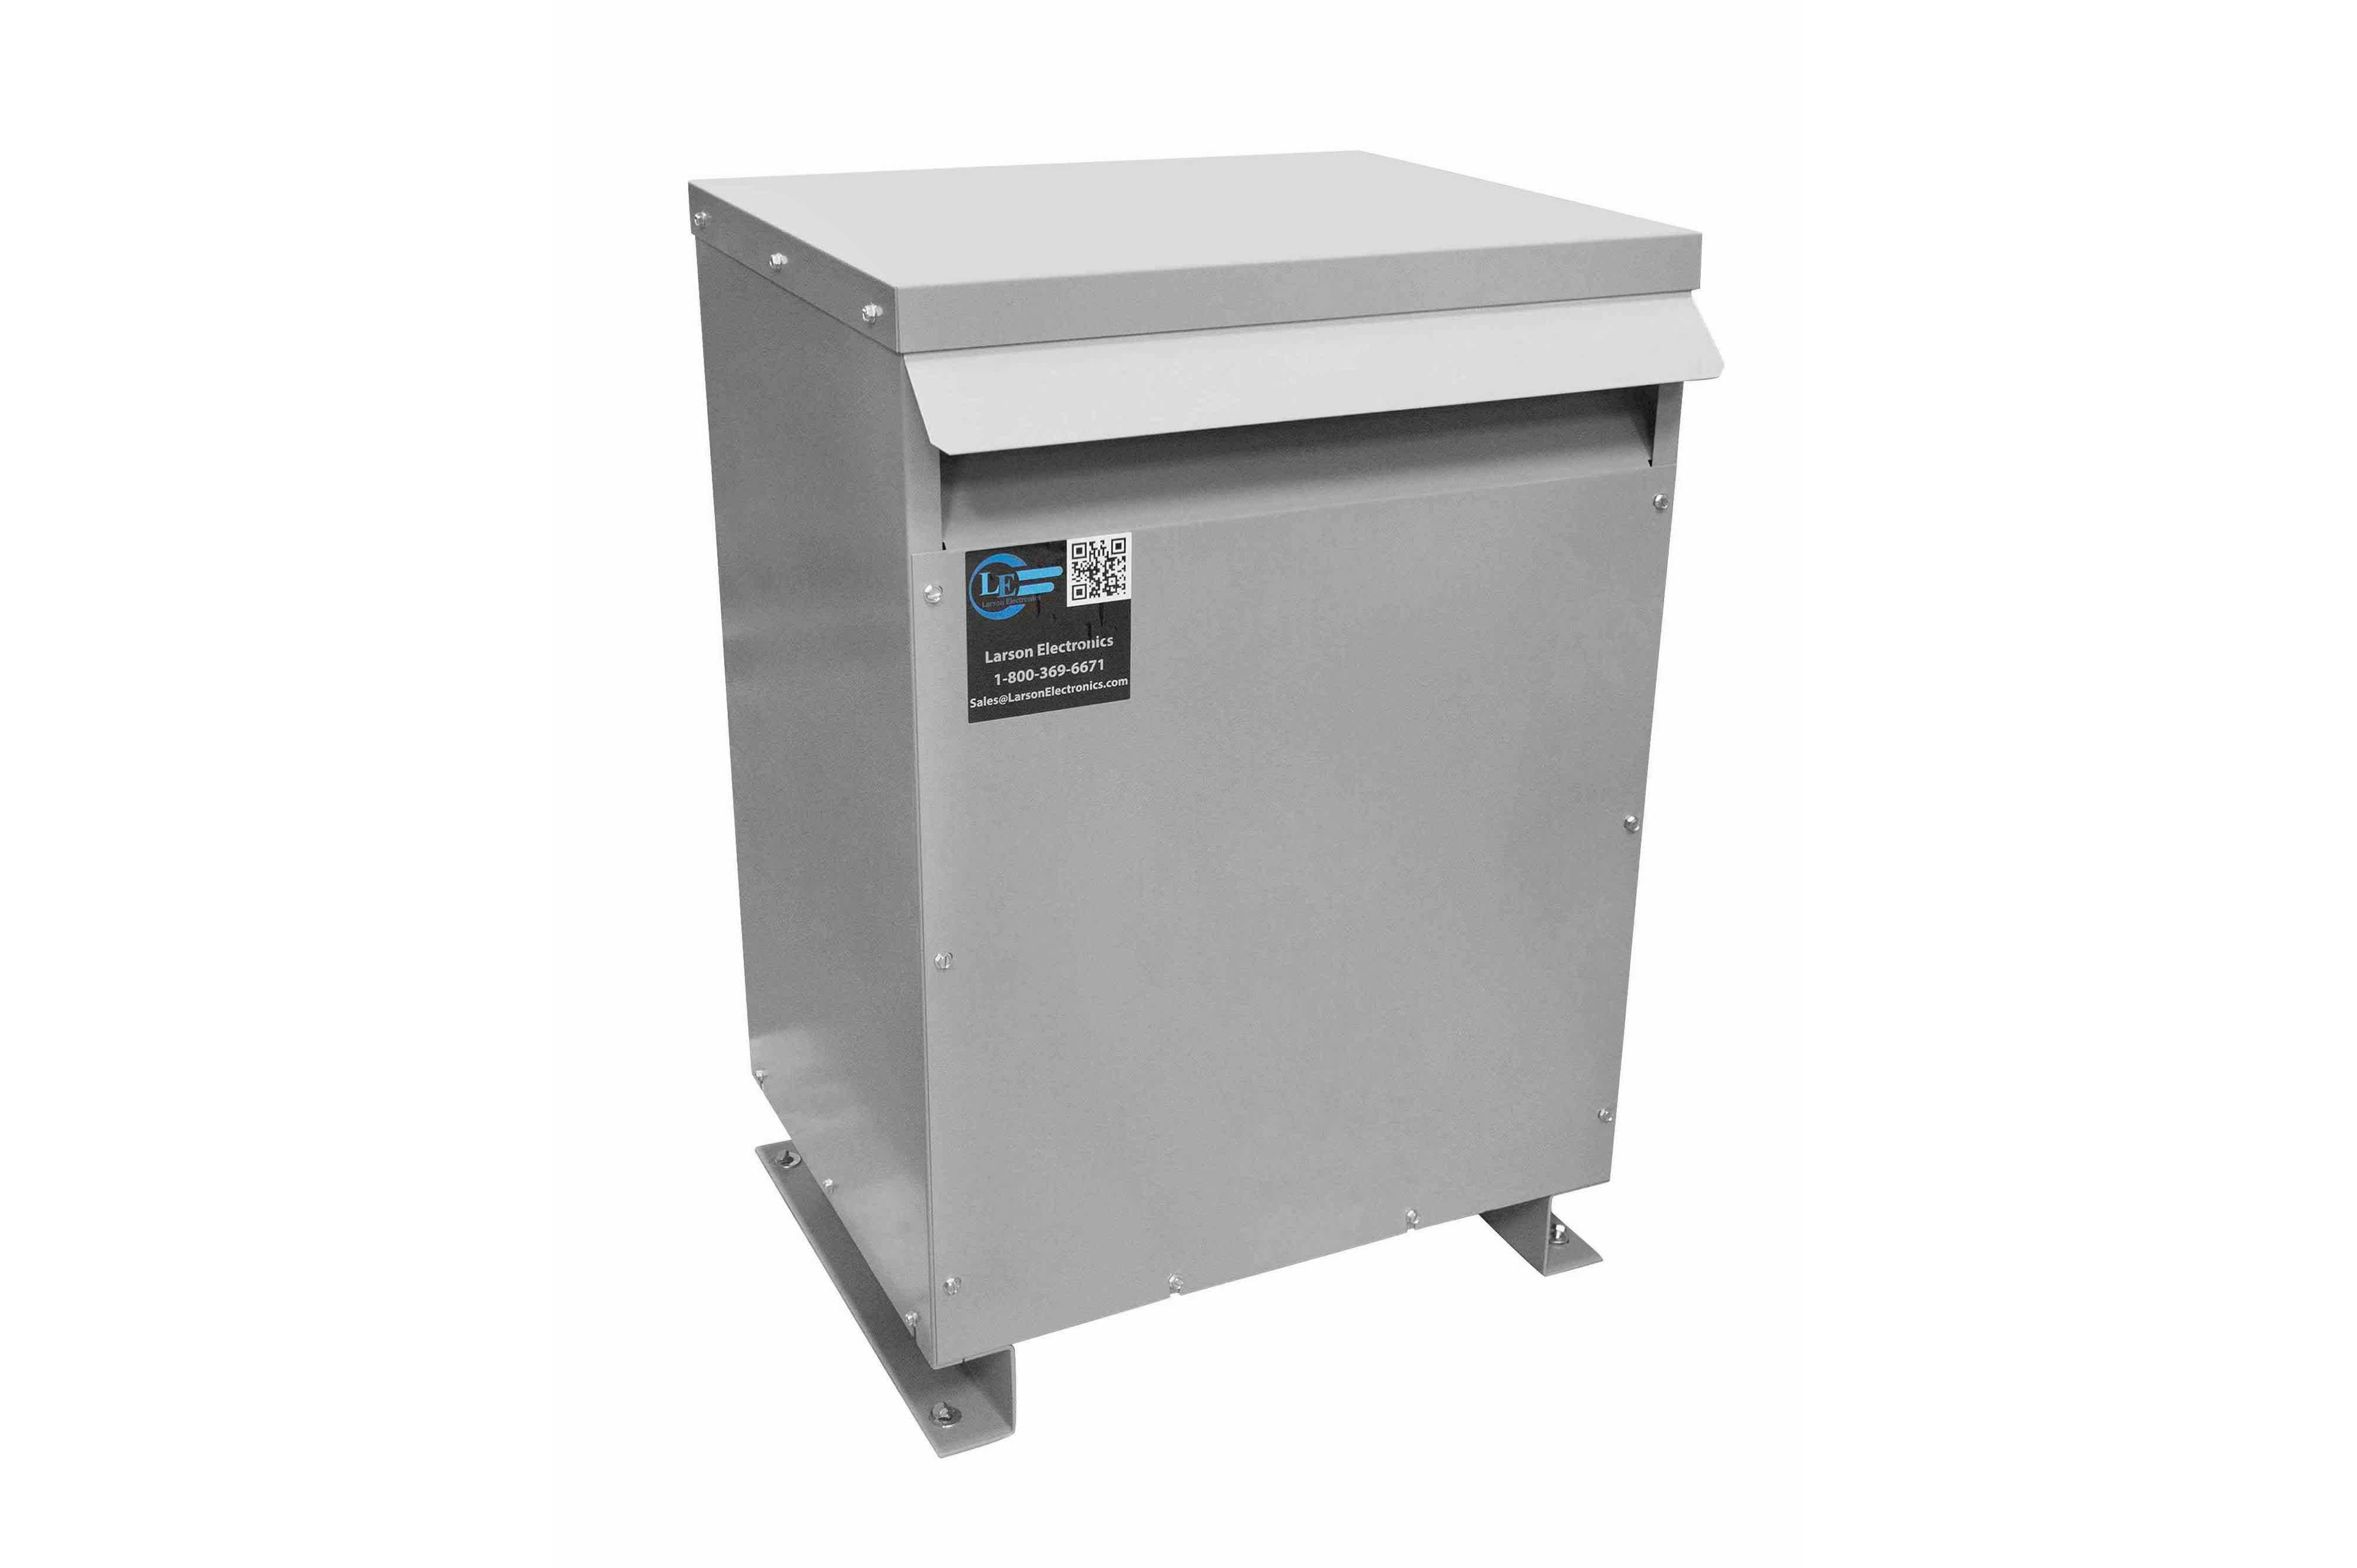 10 kVA 3PH Isolation Transformer, 440V Delta Primary, 208V Delta Secondary, N3R, Ventilated, 60 Hz